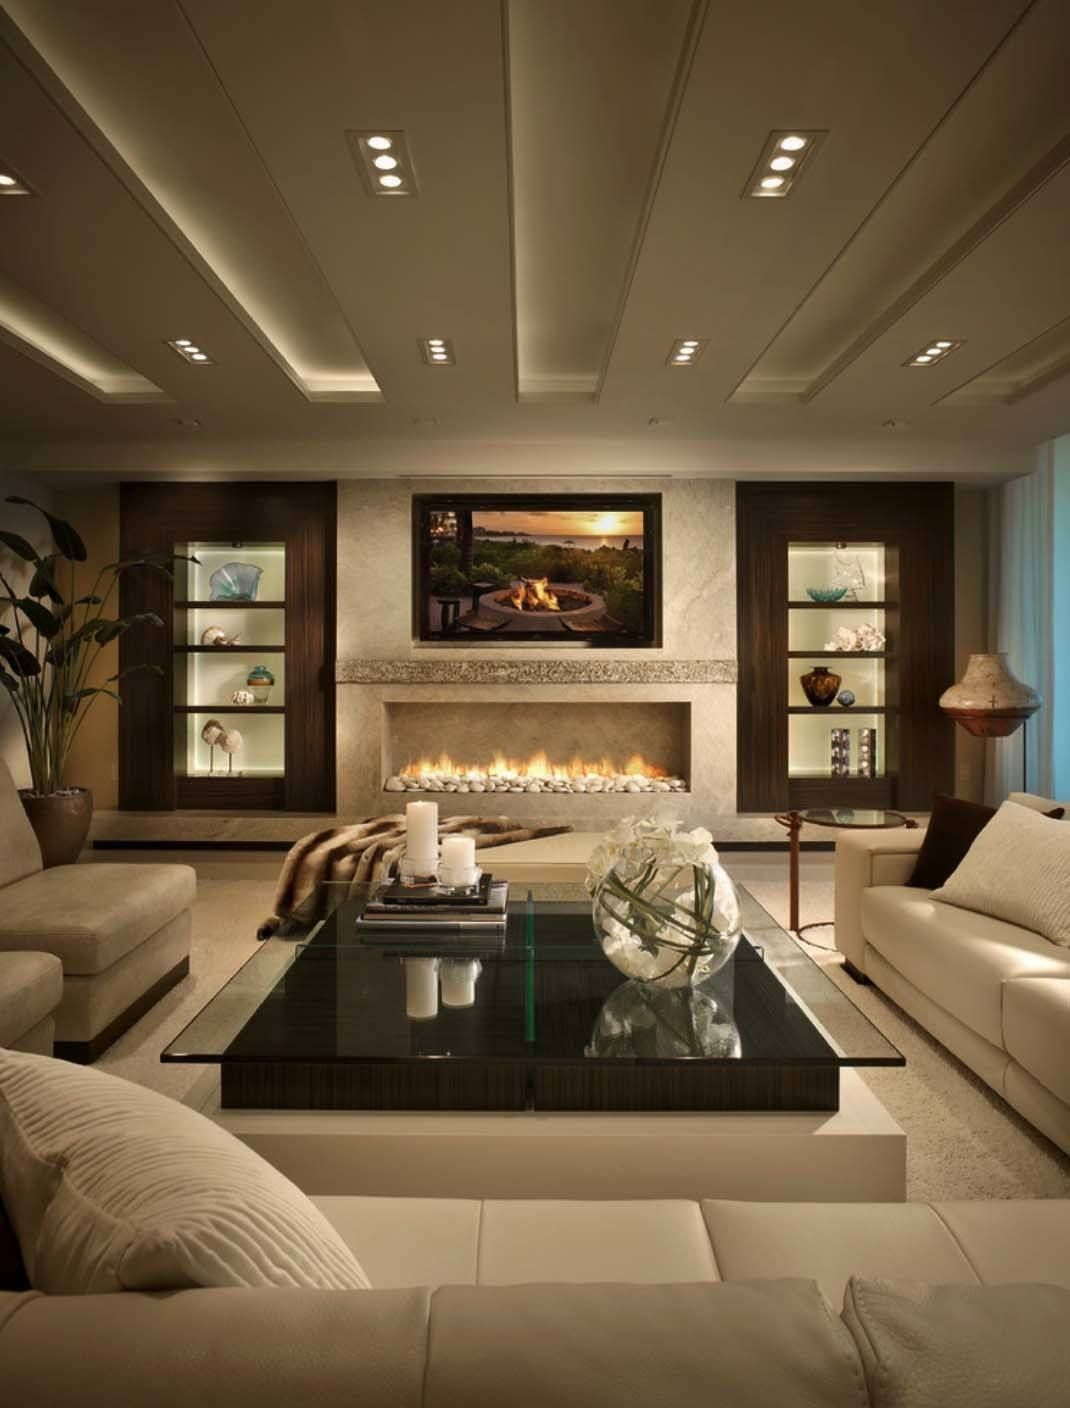 Impeccable Design Details In Luxurious Boca Raton Residence Living Room Decor Modern Contemporary Living Room Design Elegant Living Room Living room with fireplace decorating ideas